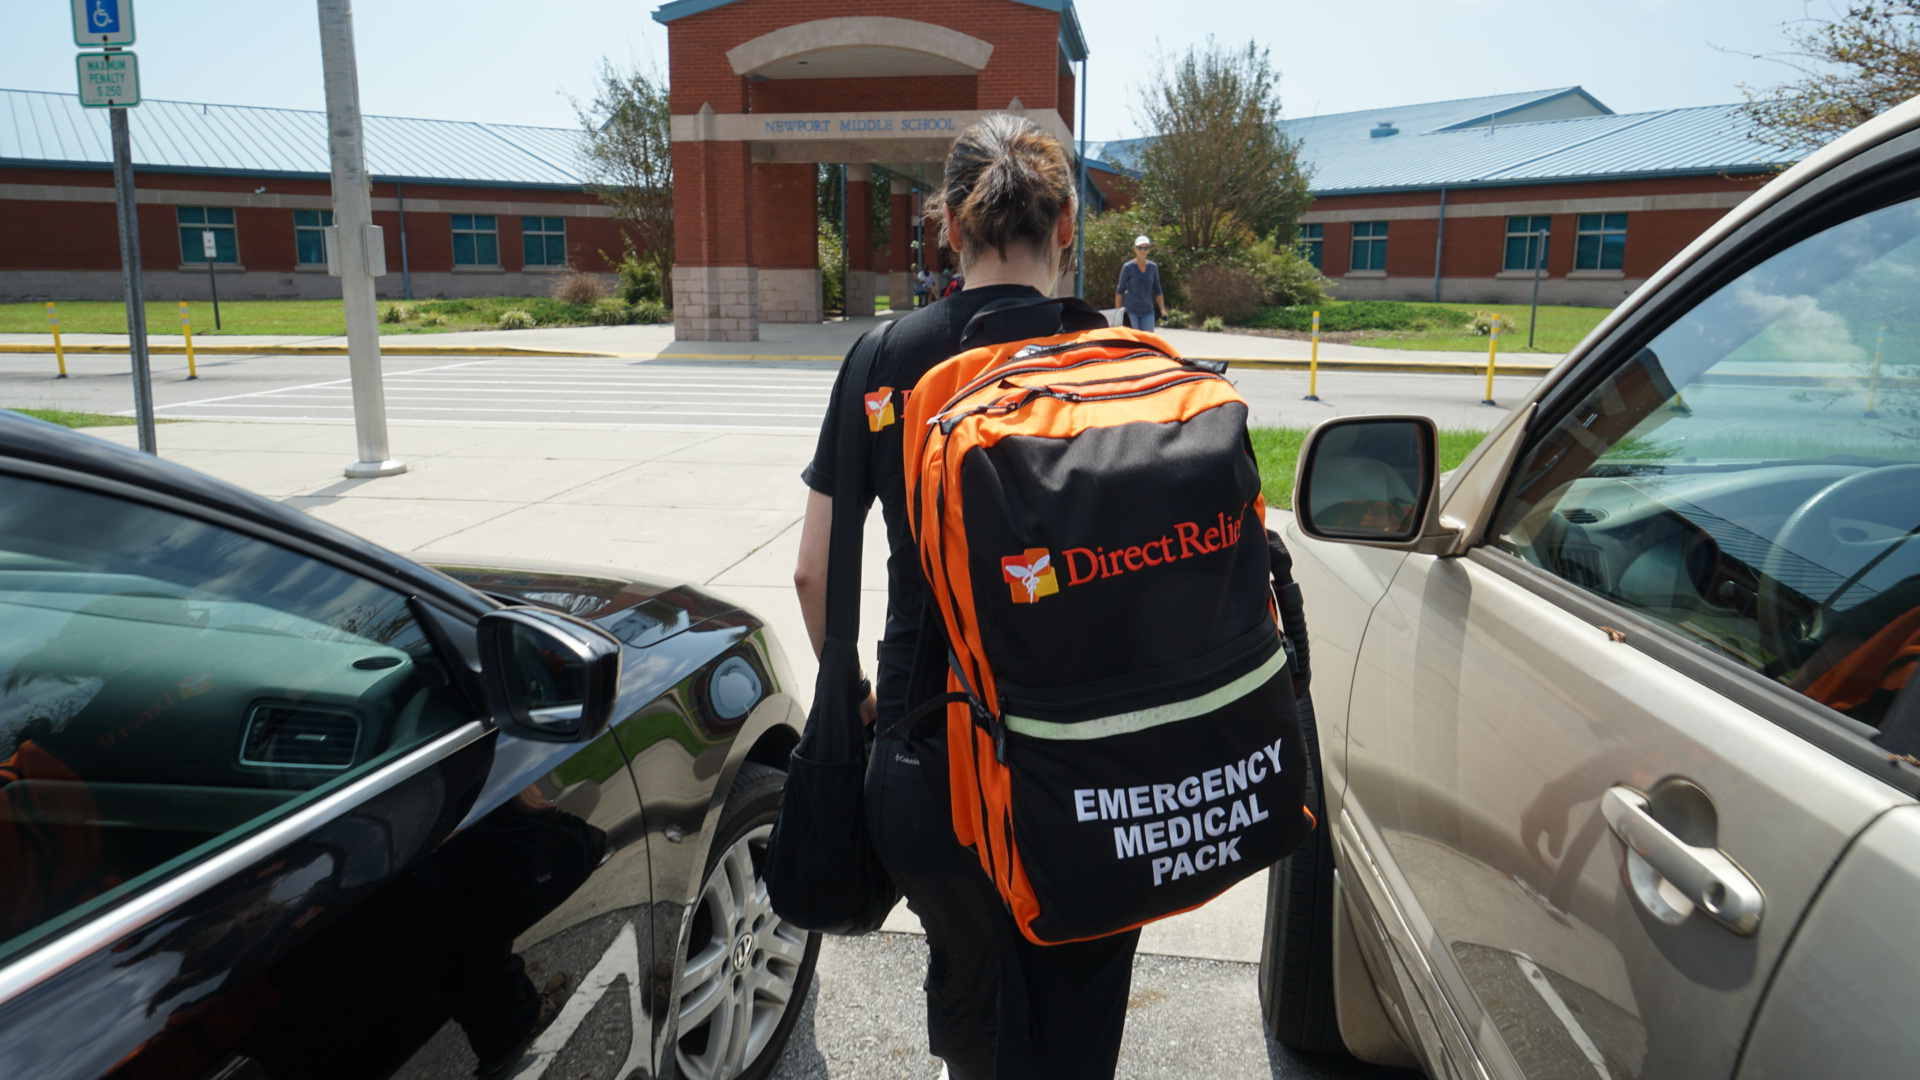 Direct Relief staff deliver emergency medical backpacks Saturday, Sept. 22, 2018, to a shelter operating out of a middle school in Newport, North Carolina. The shelter housed more than 400 people after Hurricane Florence made landfall, and health staff there used Direct Relief-provided medical supplies to treat an influx of patients after many were evacuated from their homes in the wake of rising floodwaters. (Lara Cooper/Direct Relief)